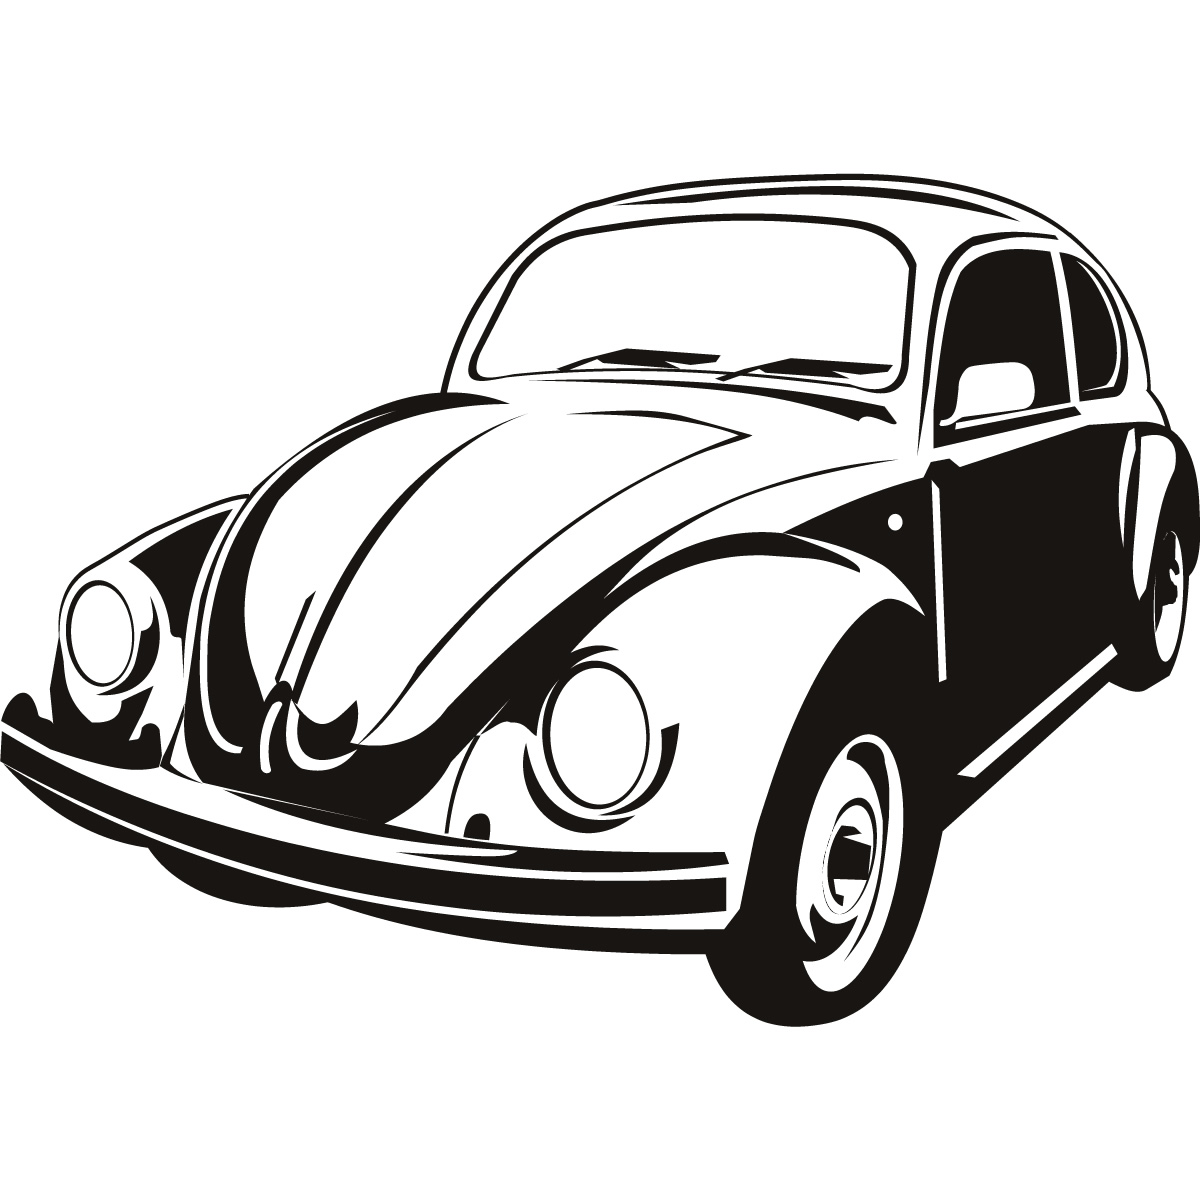 vw beetle drawing at getdrawings free for personal use vw 99 Lincoln Navigator Fuse Diagram 1200x1200 vw beetle clipart